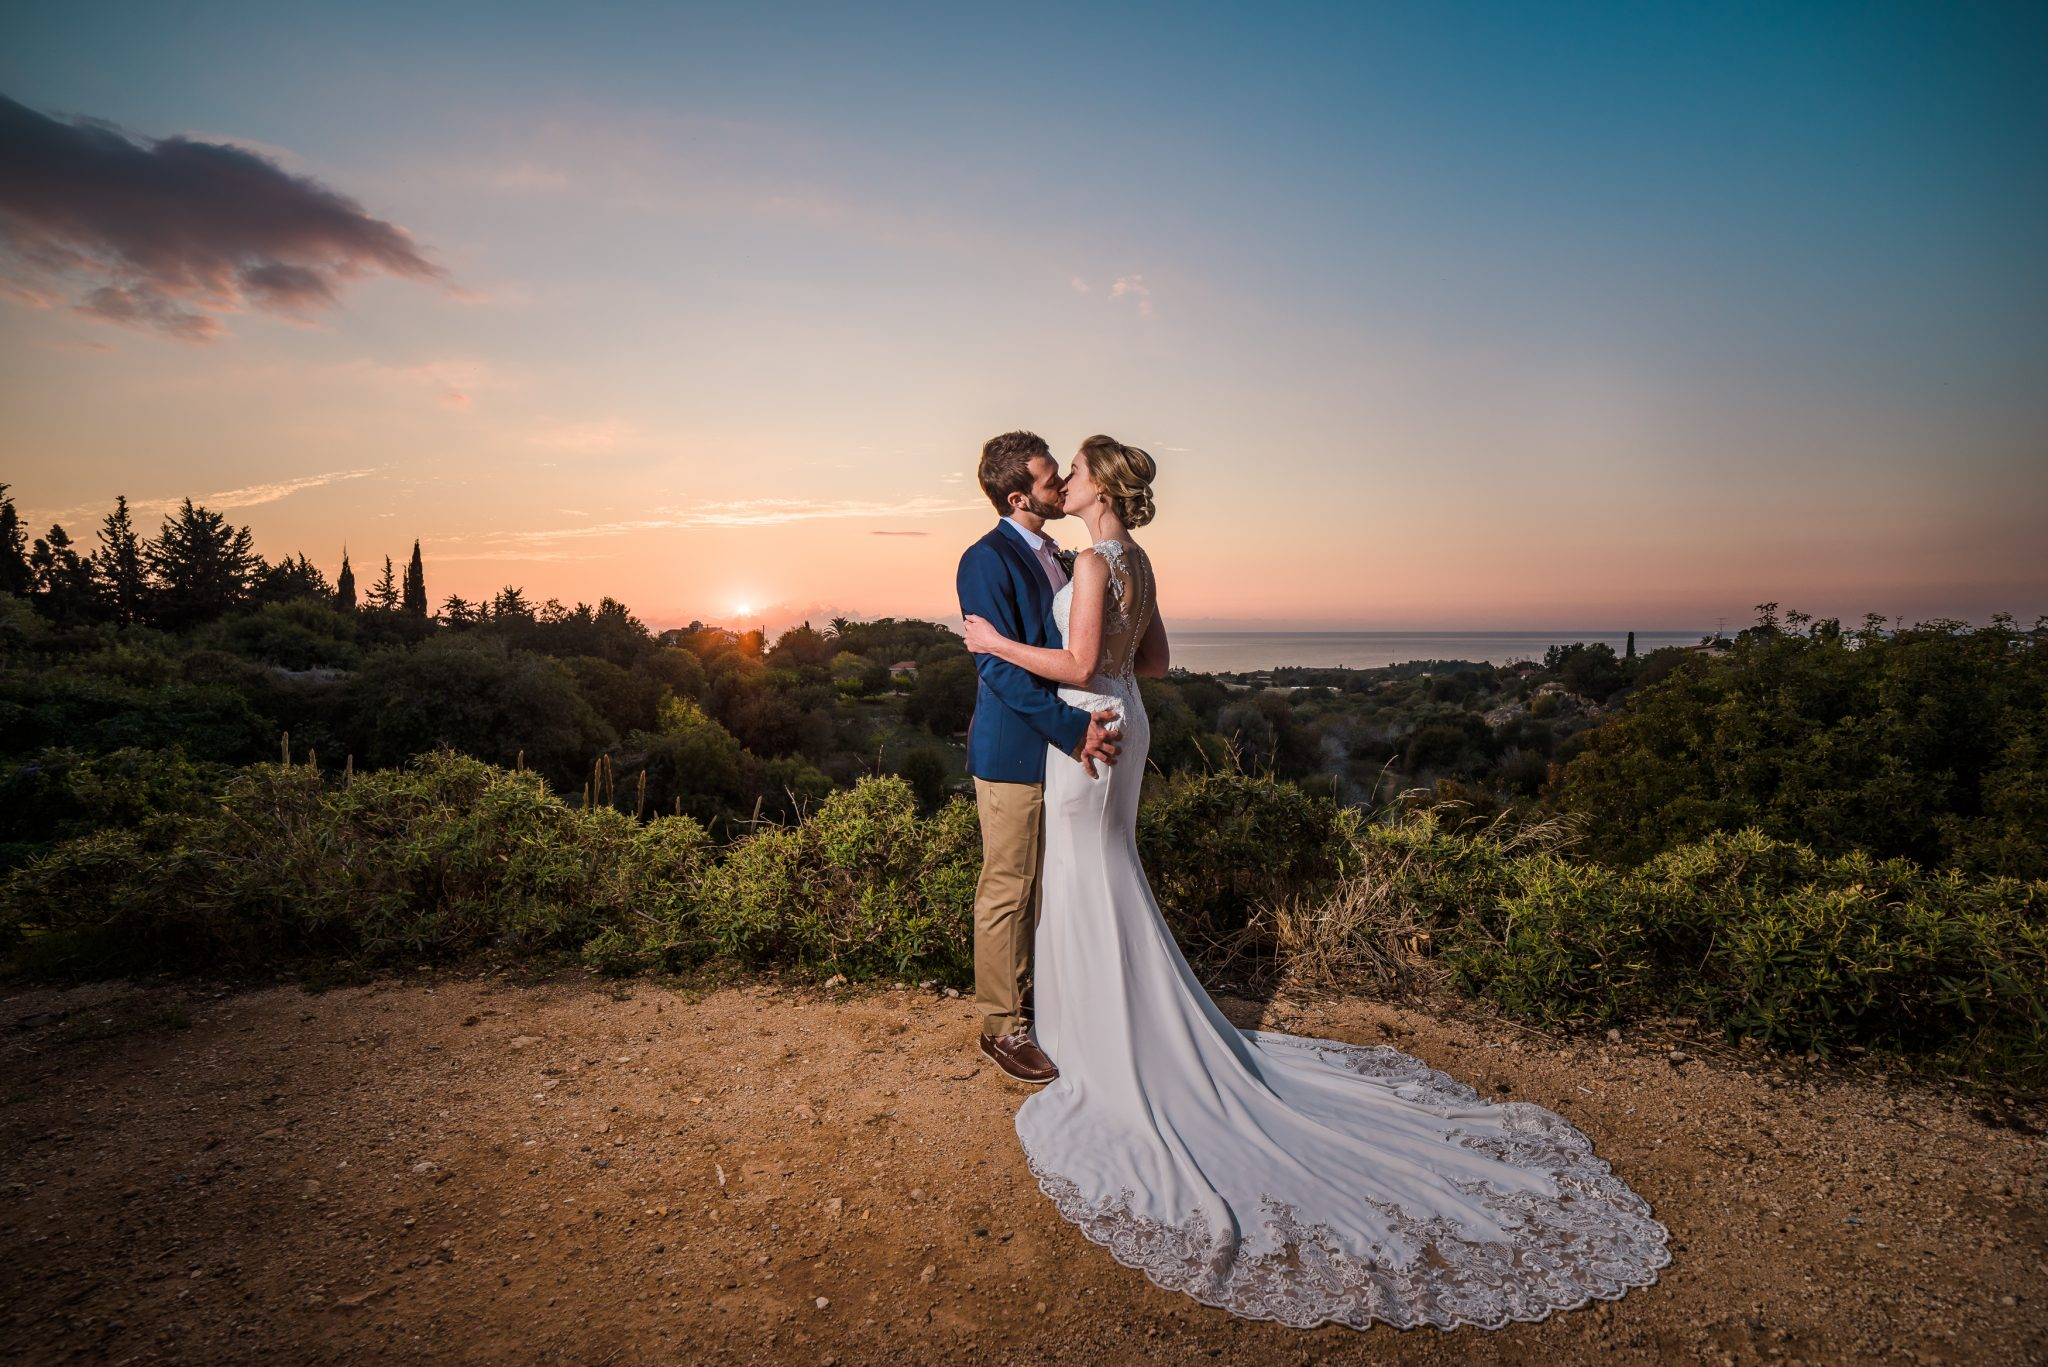 The sunset was amazing an it made the perfect drop for my images, I always look for the best places to take my couples as a Paphos wedding photographer.